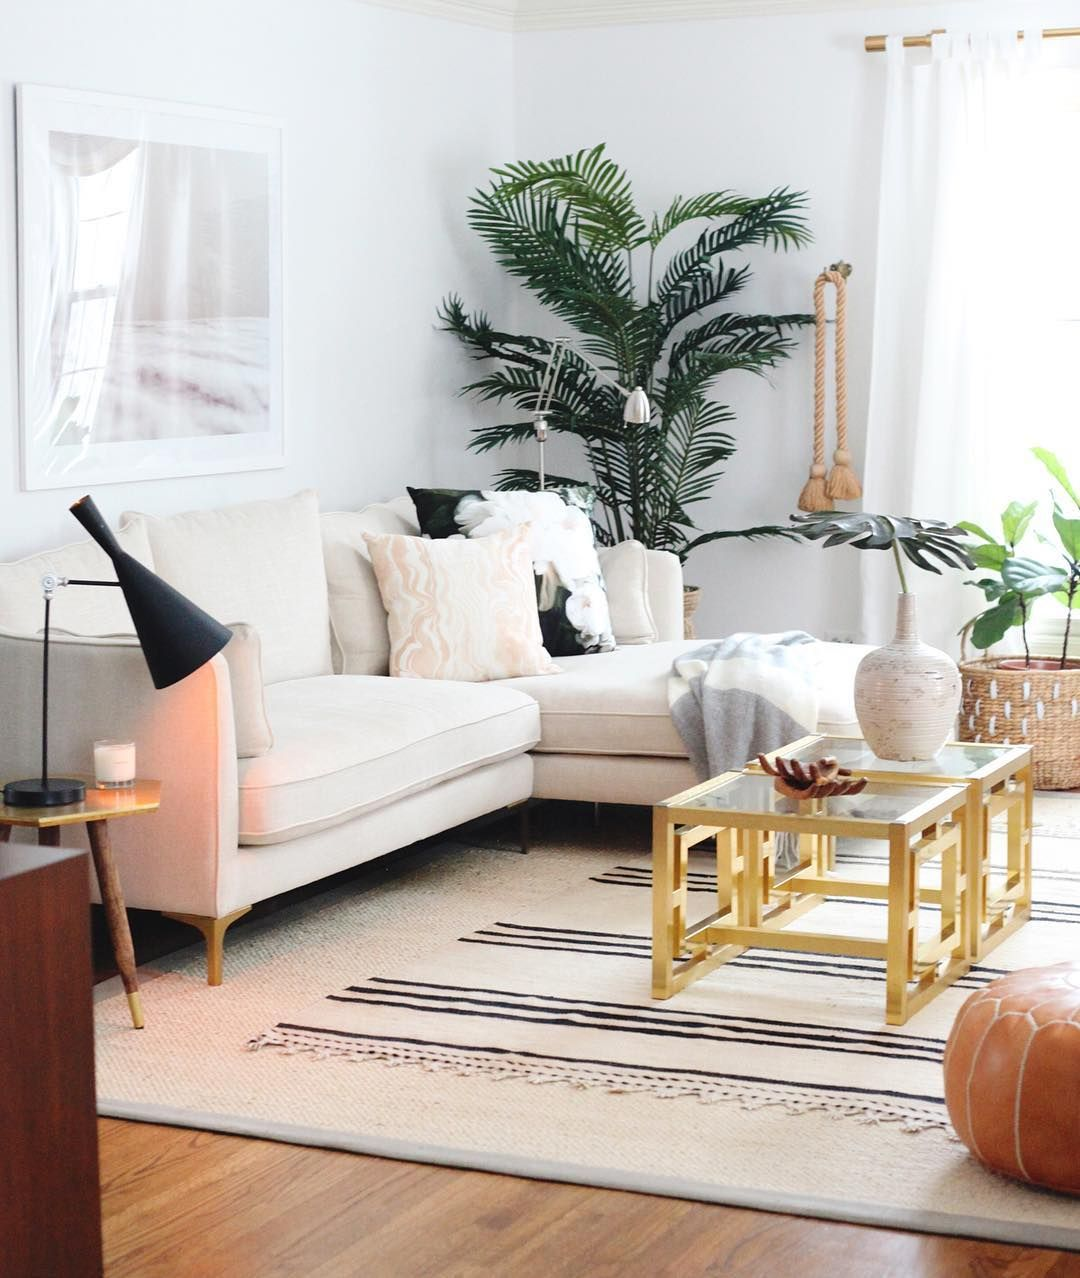 White Sofa And Layered Rugs For A Modern Eclectic Home Decor Style With Touch Of Boho